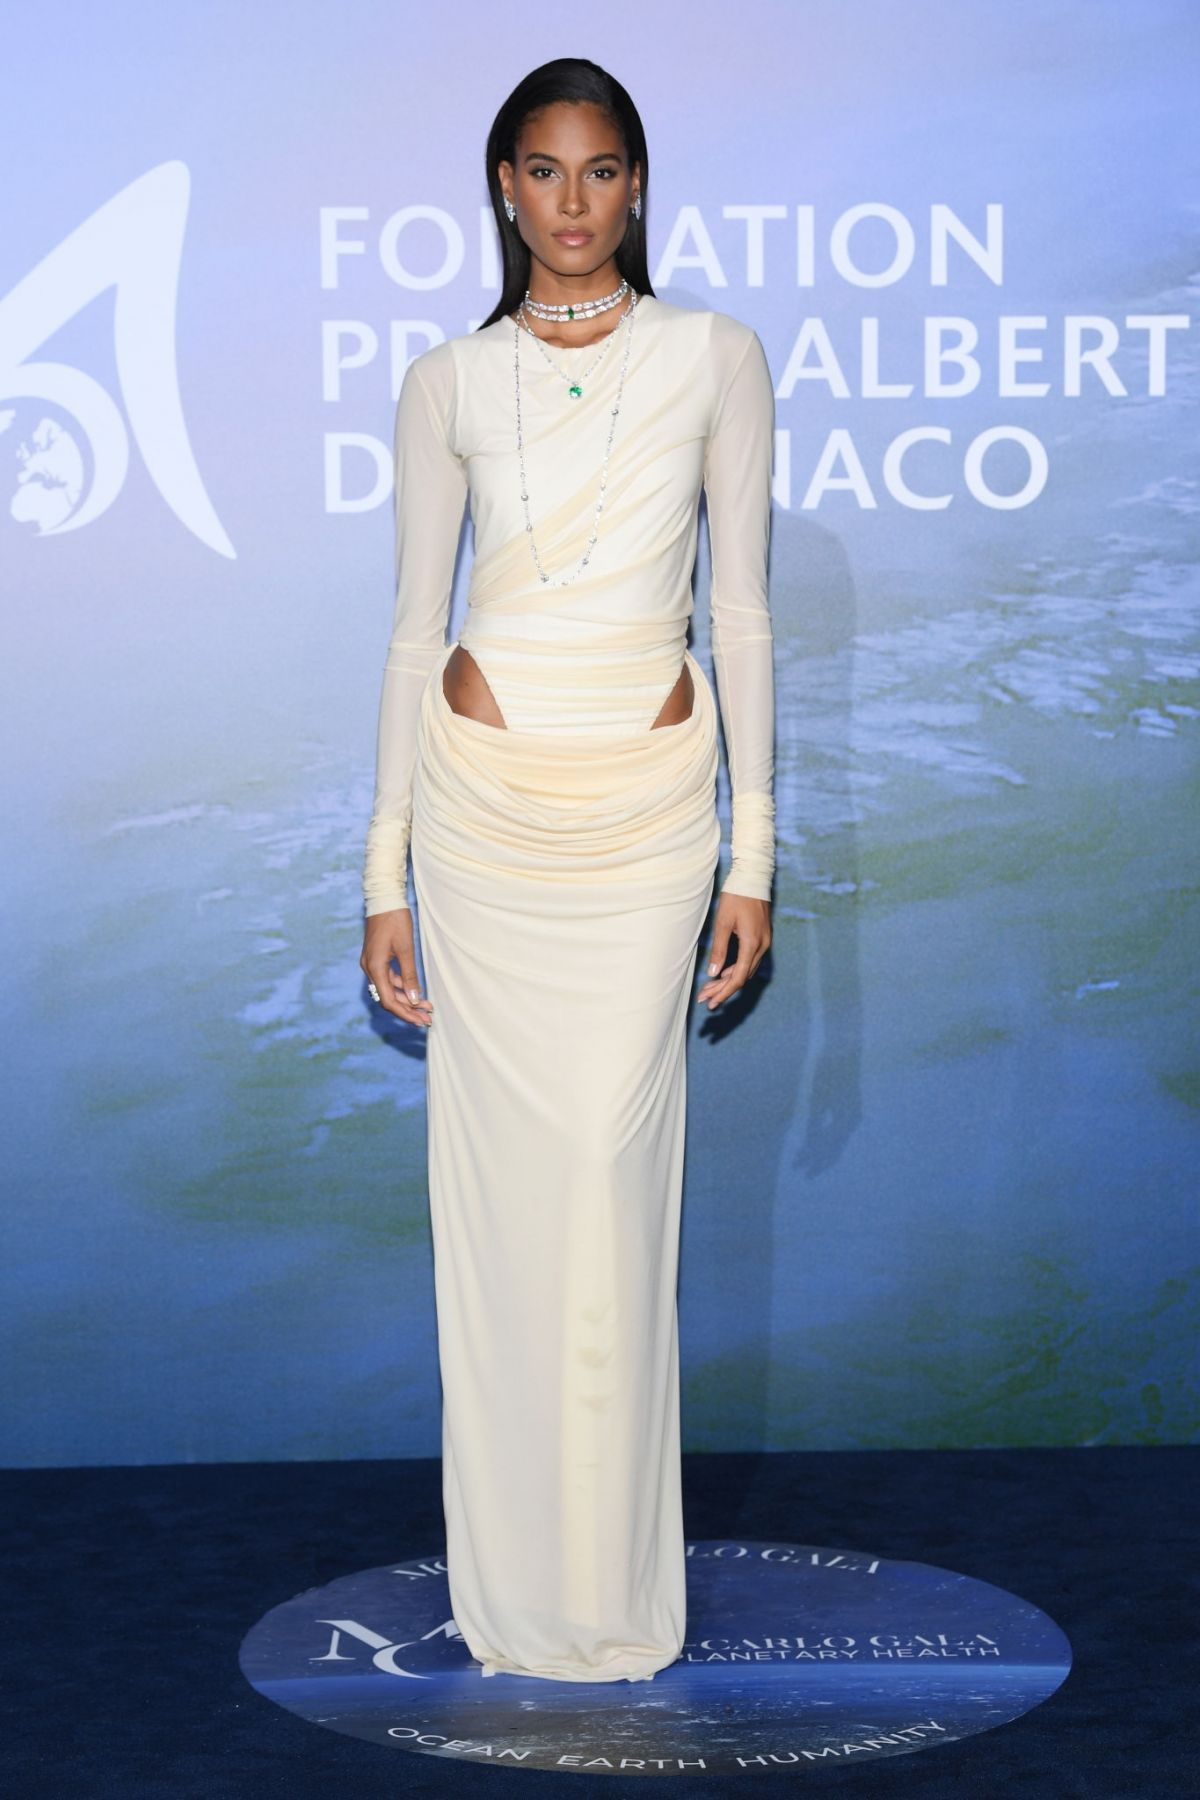 cindy-bruna-in-y-project-draped-dress-2020-the-monte-carlo-gala-for-planetary-health